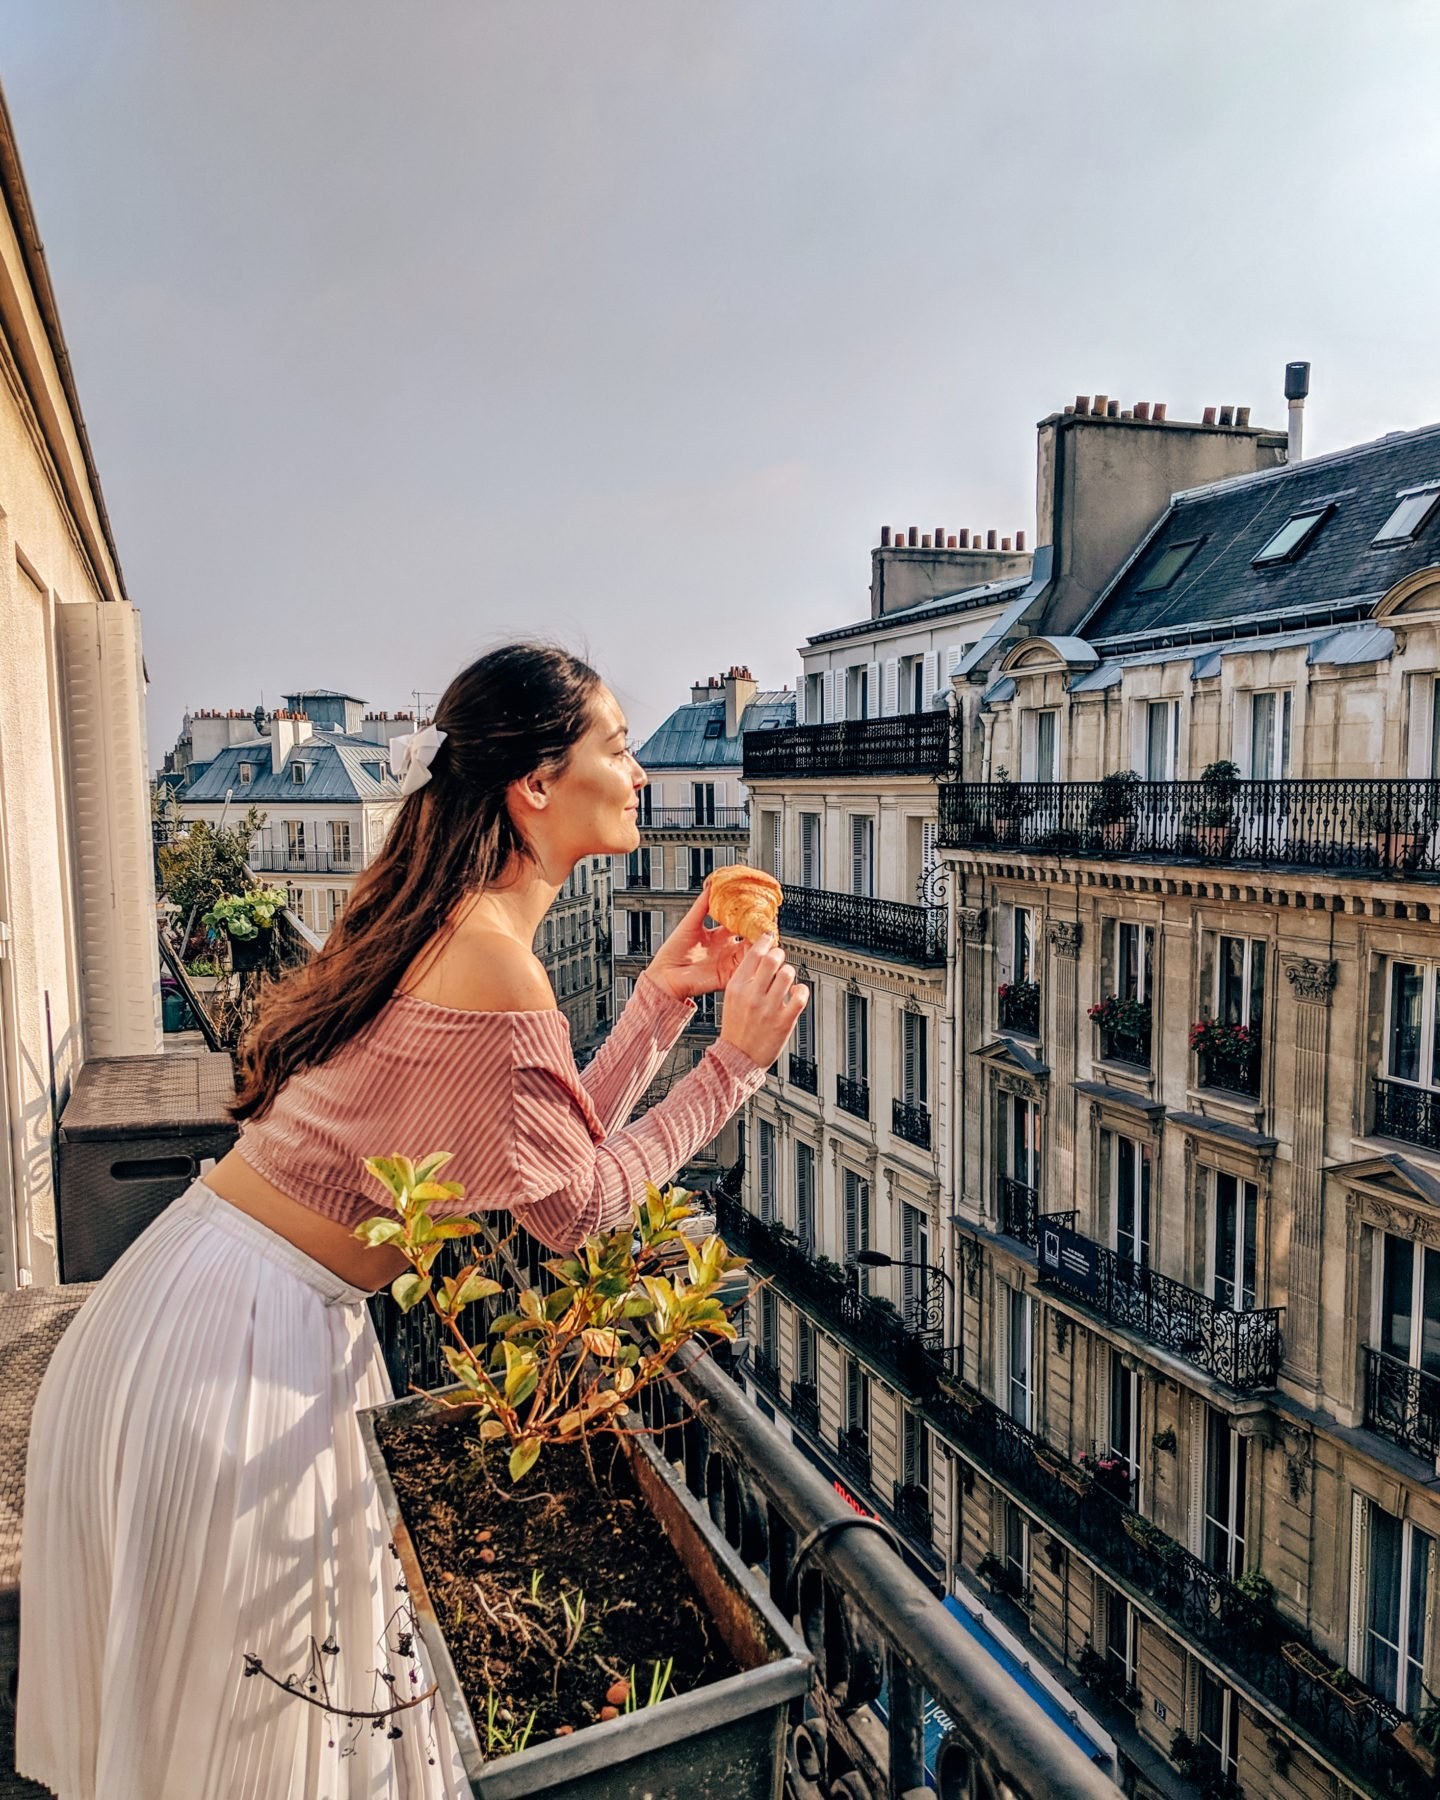 7 Reasons Why You Should Stay At An AirBNB In Paris